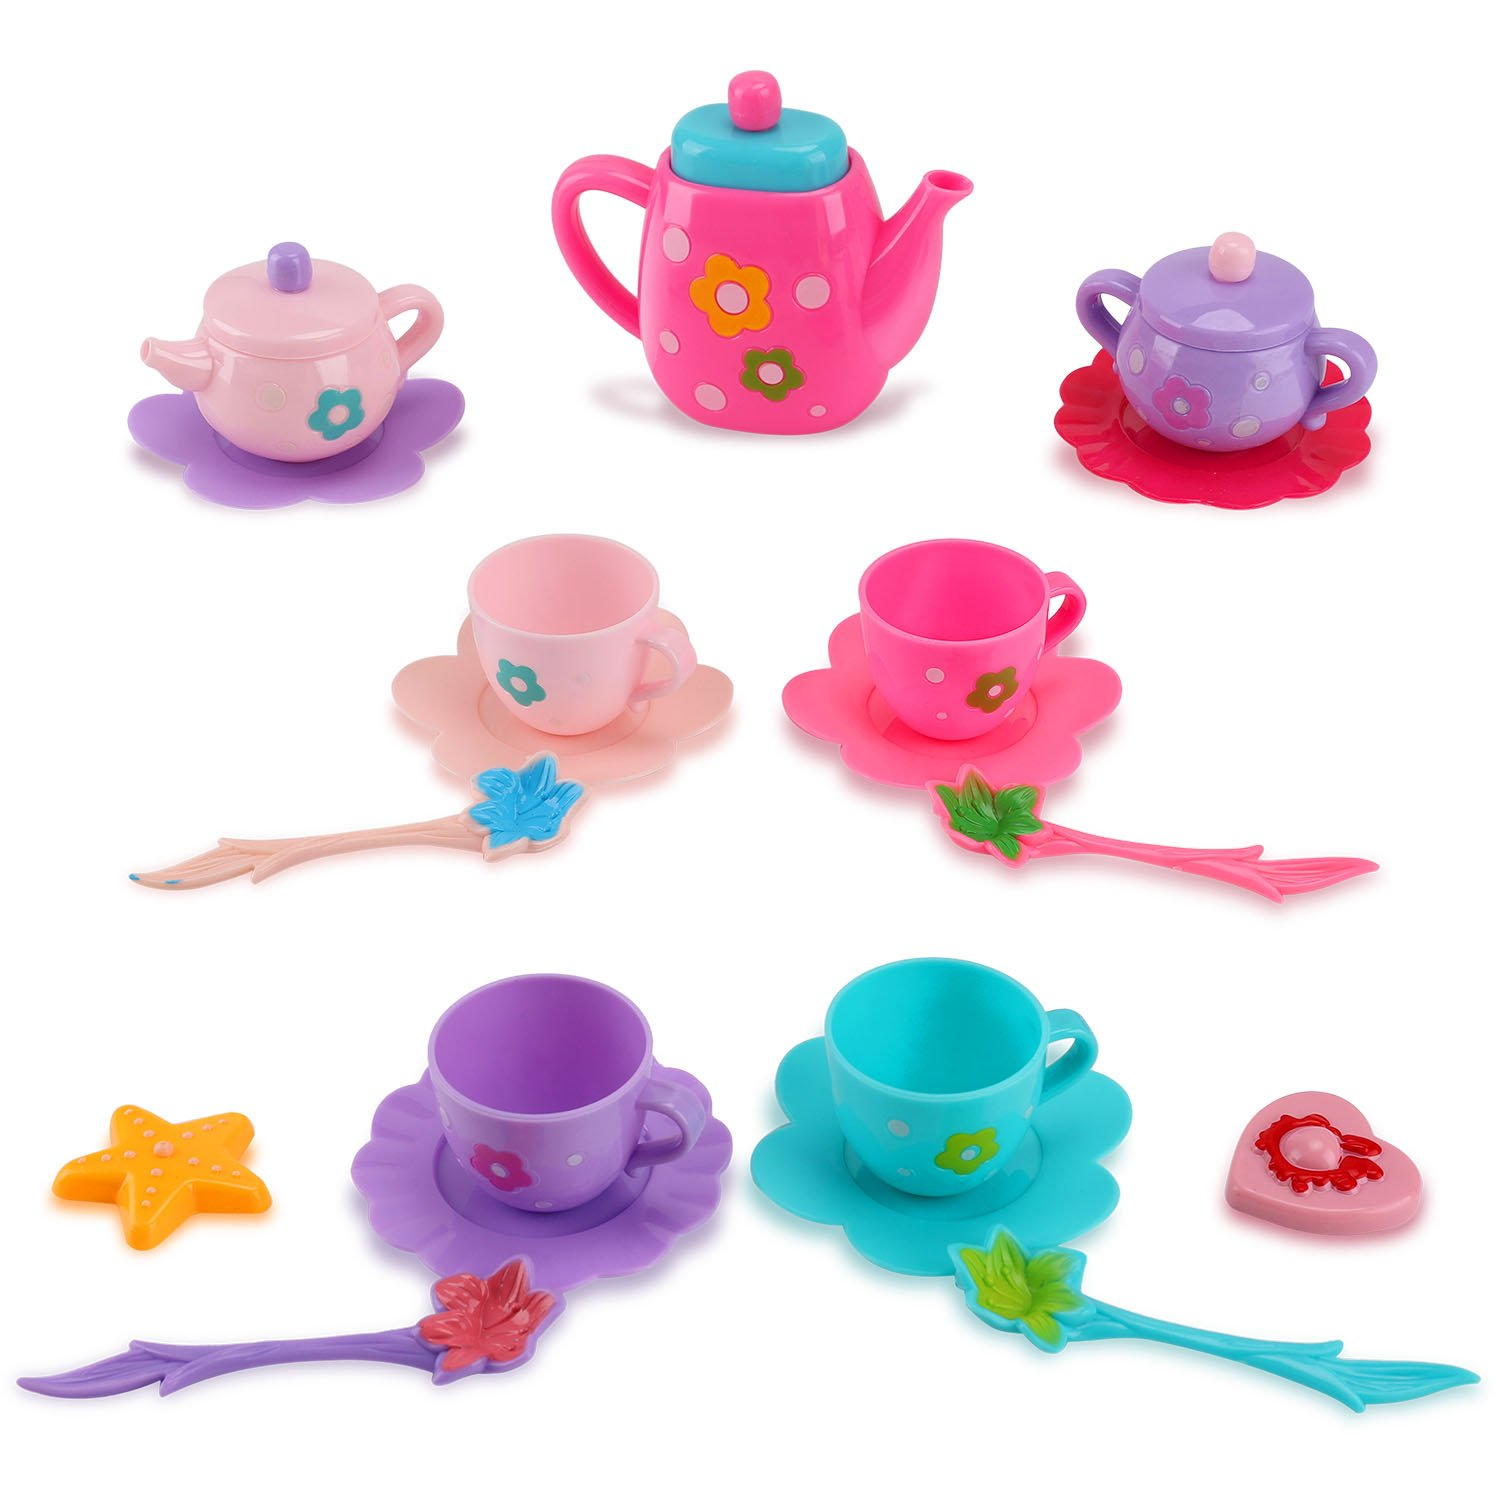 Liberty Imports Princess Royal Tea Set Pretend Playset - Kids Tea Party Play Food Accessories Kitchen Toy Teapot Gift Set for Girls (21-Piece) by Liberty Imports